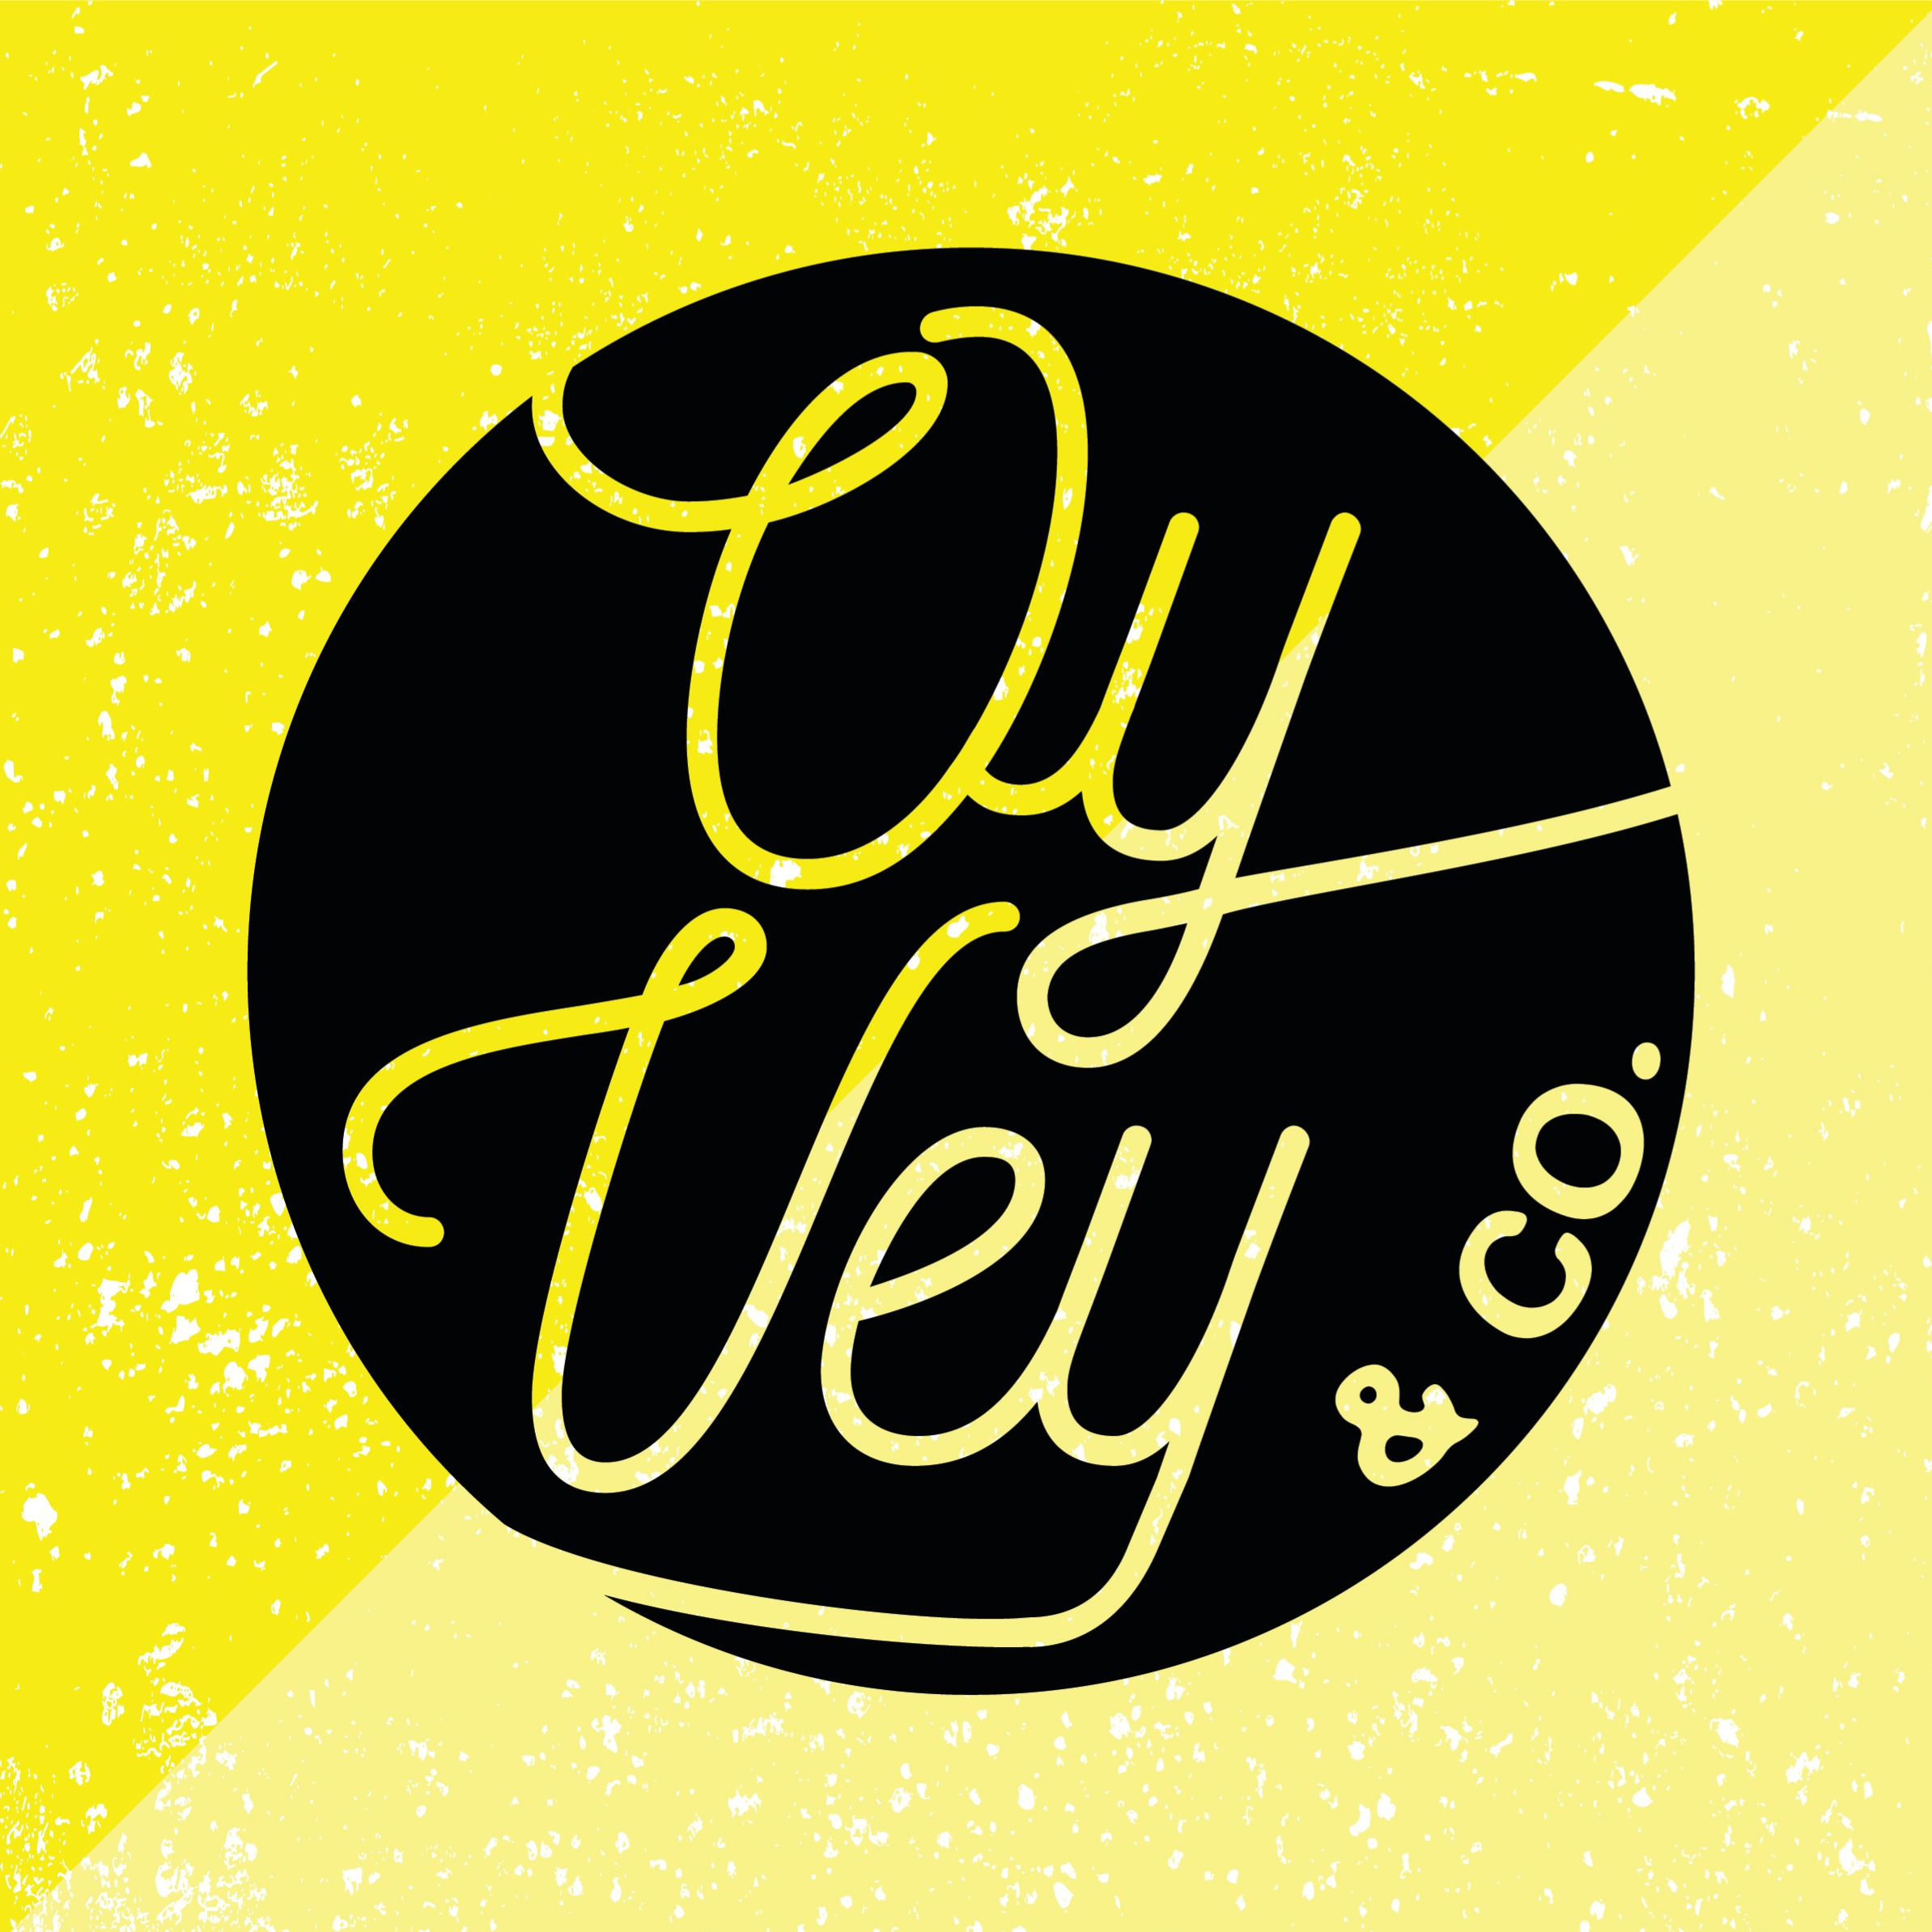 Oy Vey & Co_edited